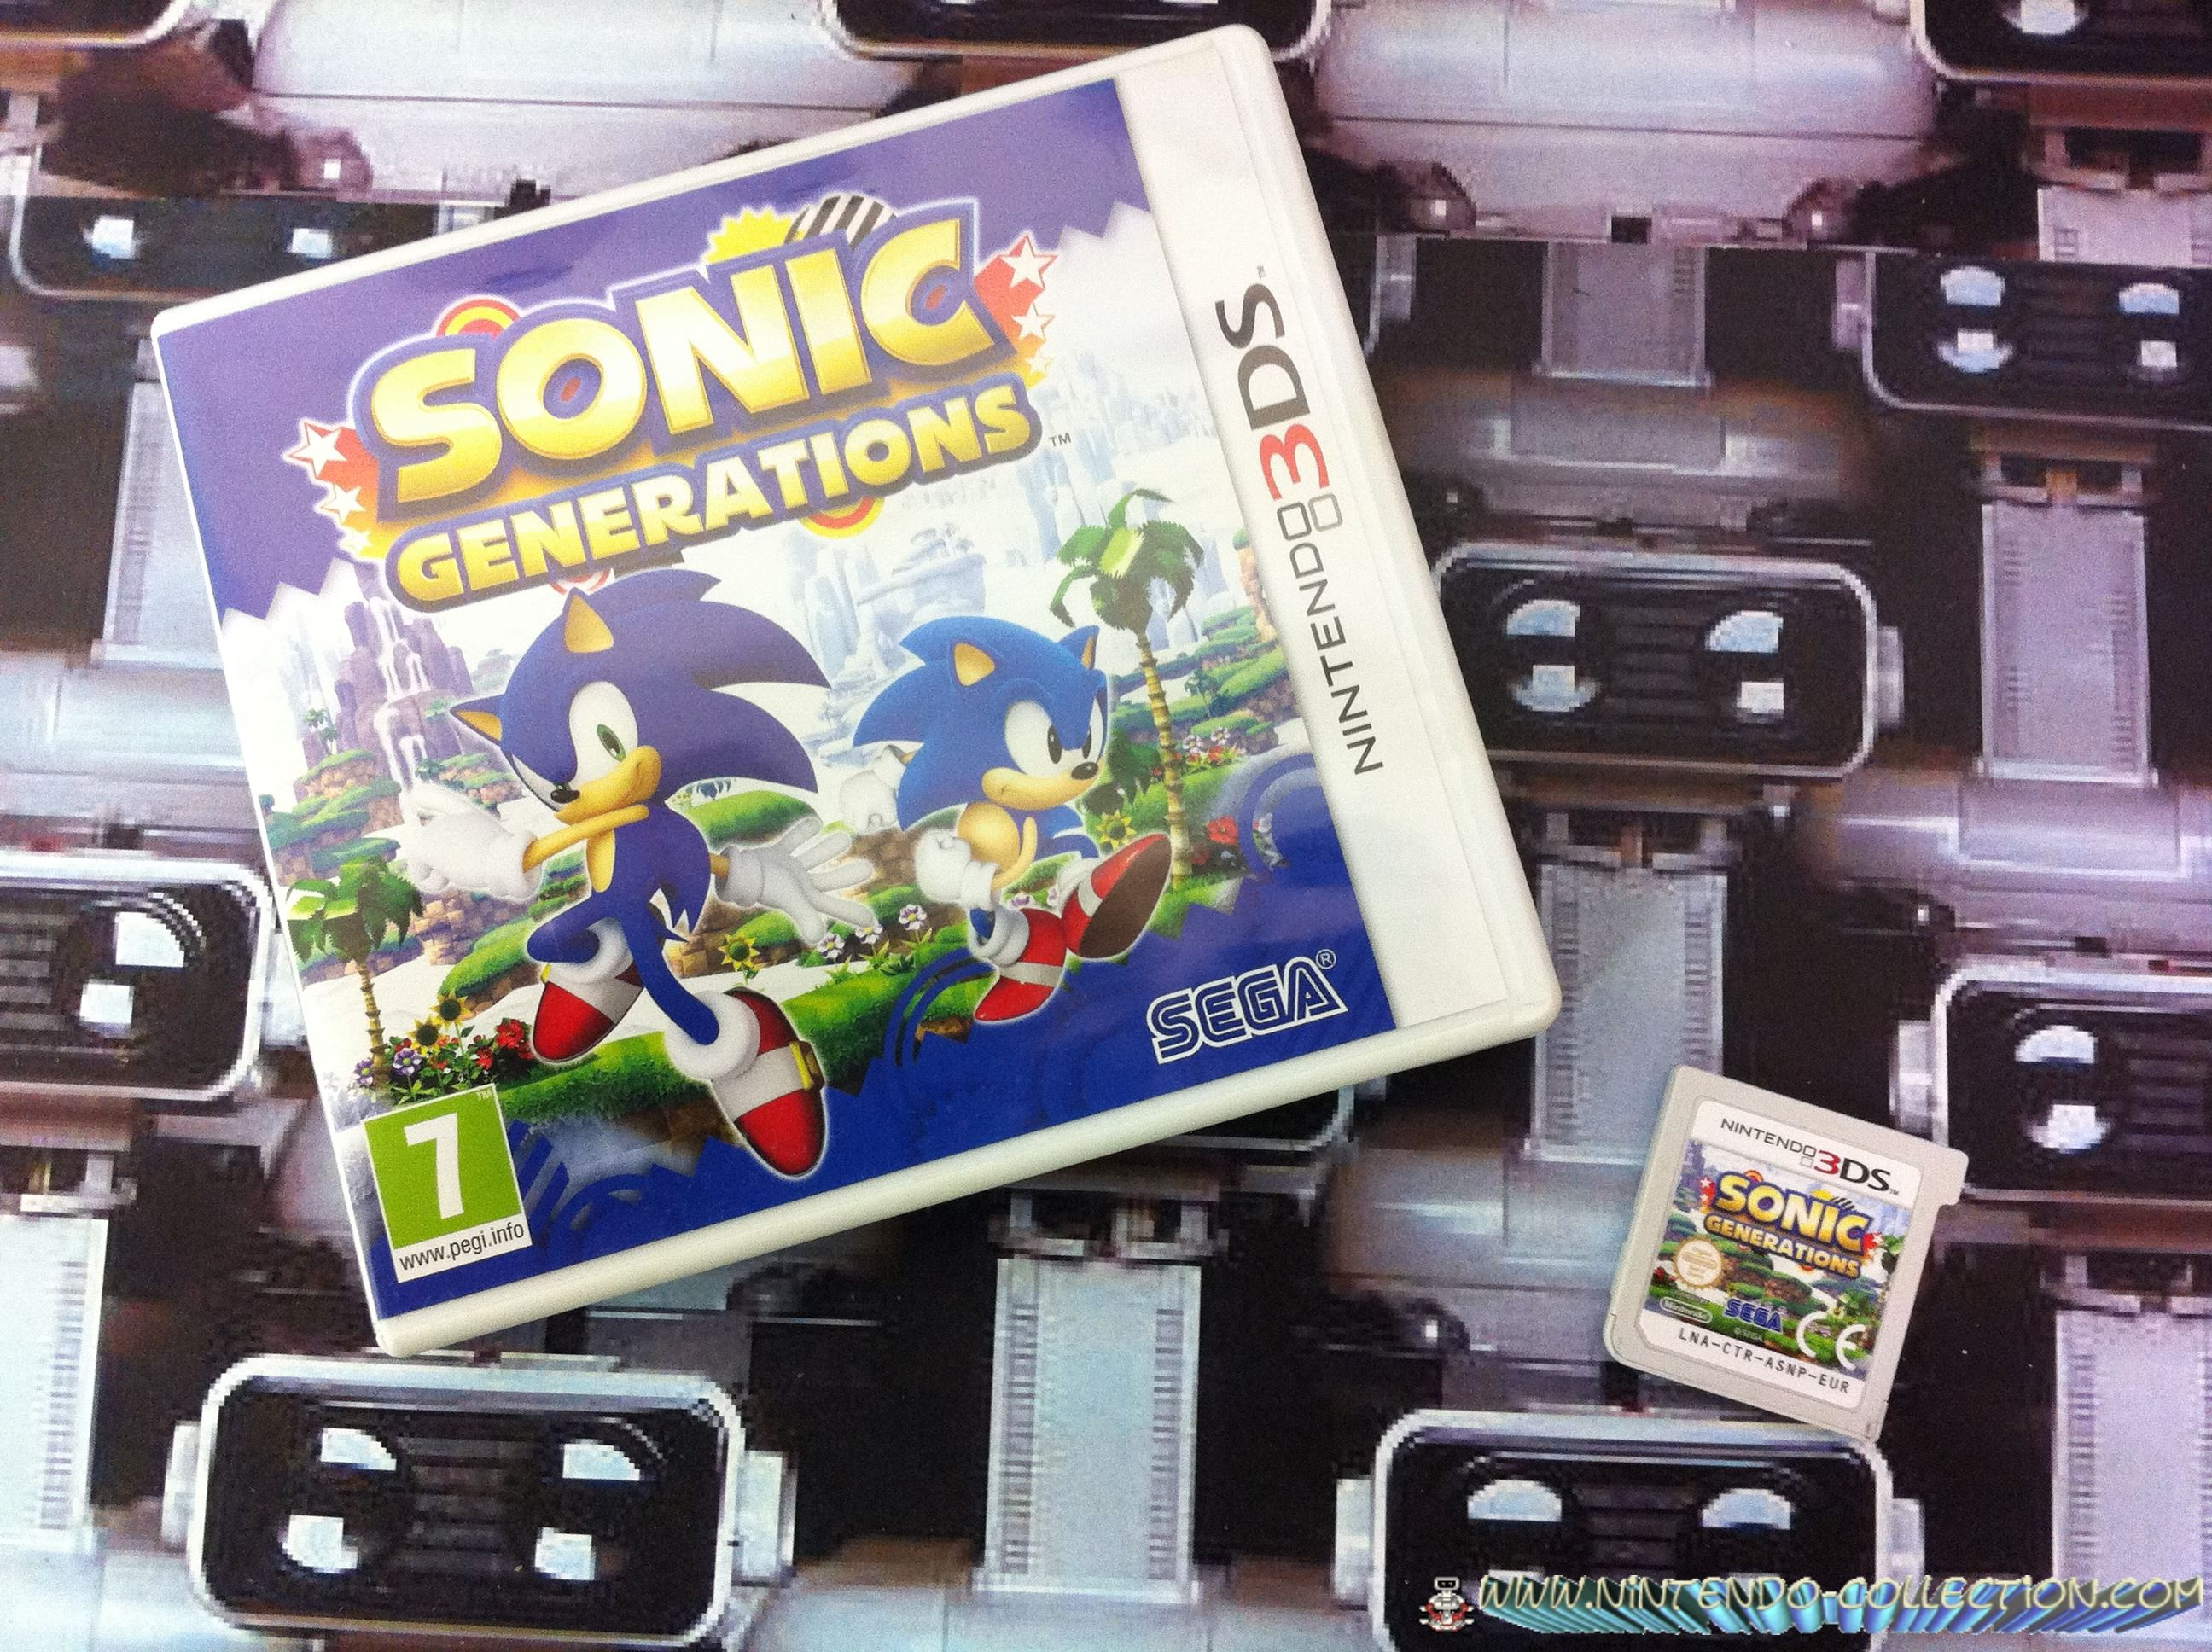 www.nintendo-collection.com - Sonic Generation 3DS